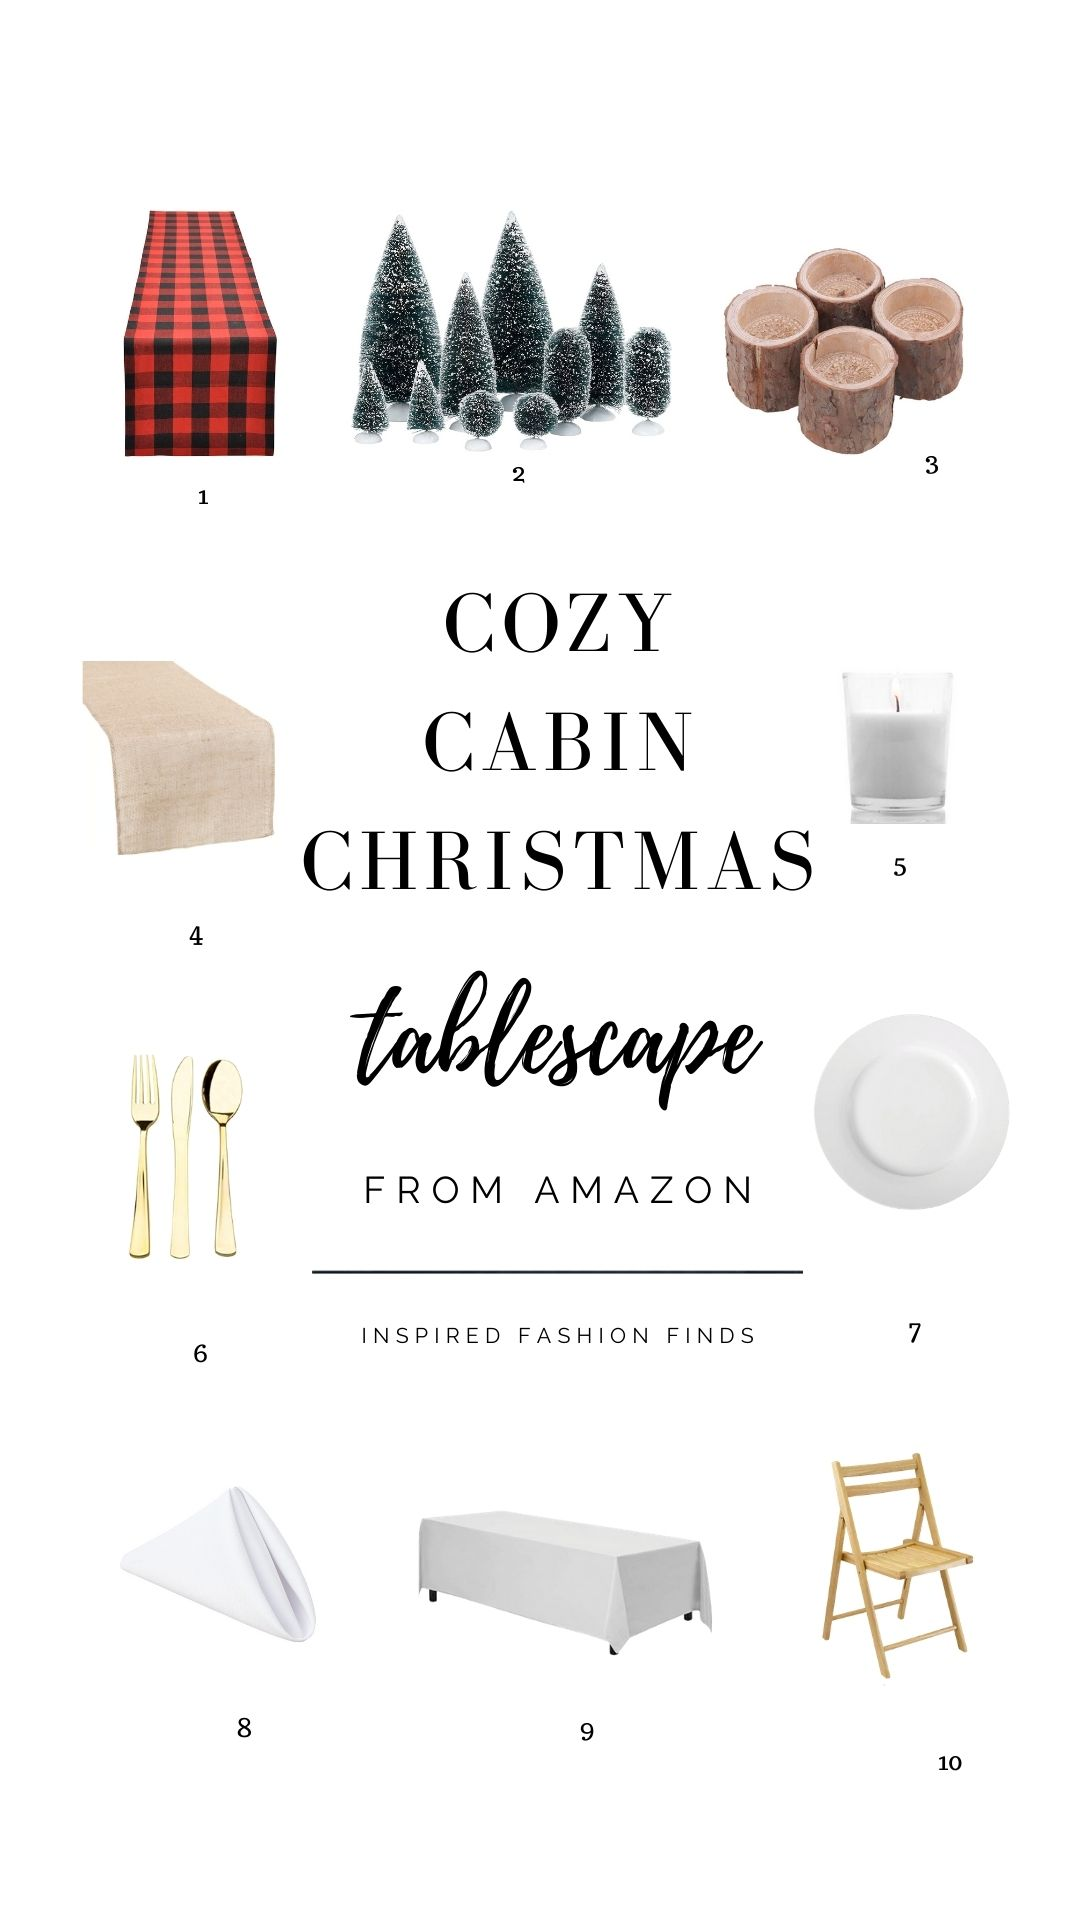 Holiday Decor-Cozy tablescape flannel cabin chrissy horton inspired fashion finds pinterest pin